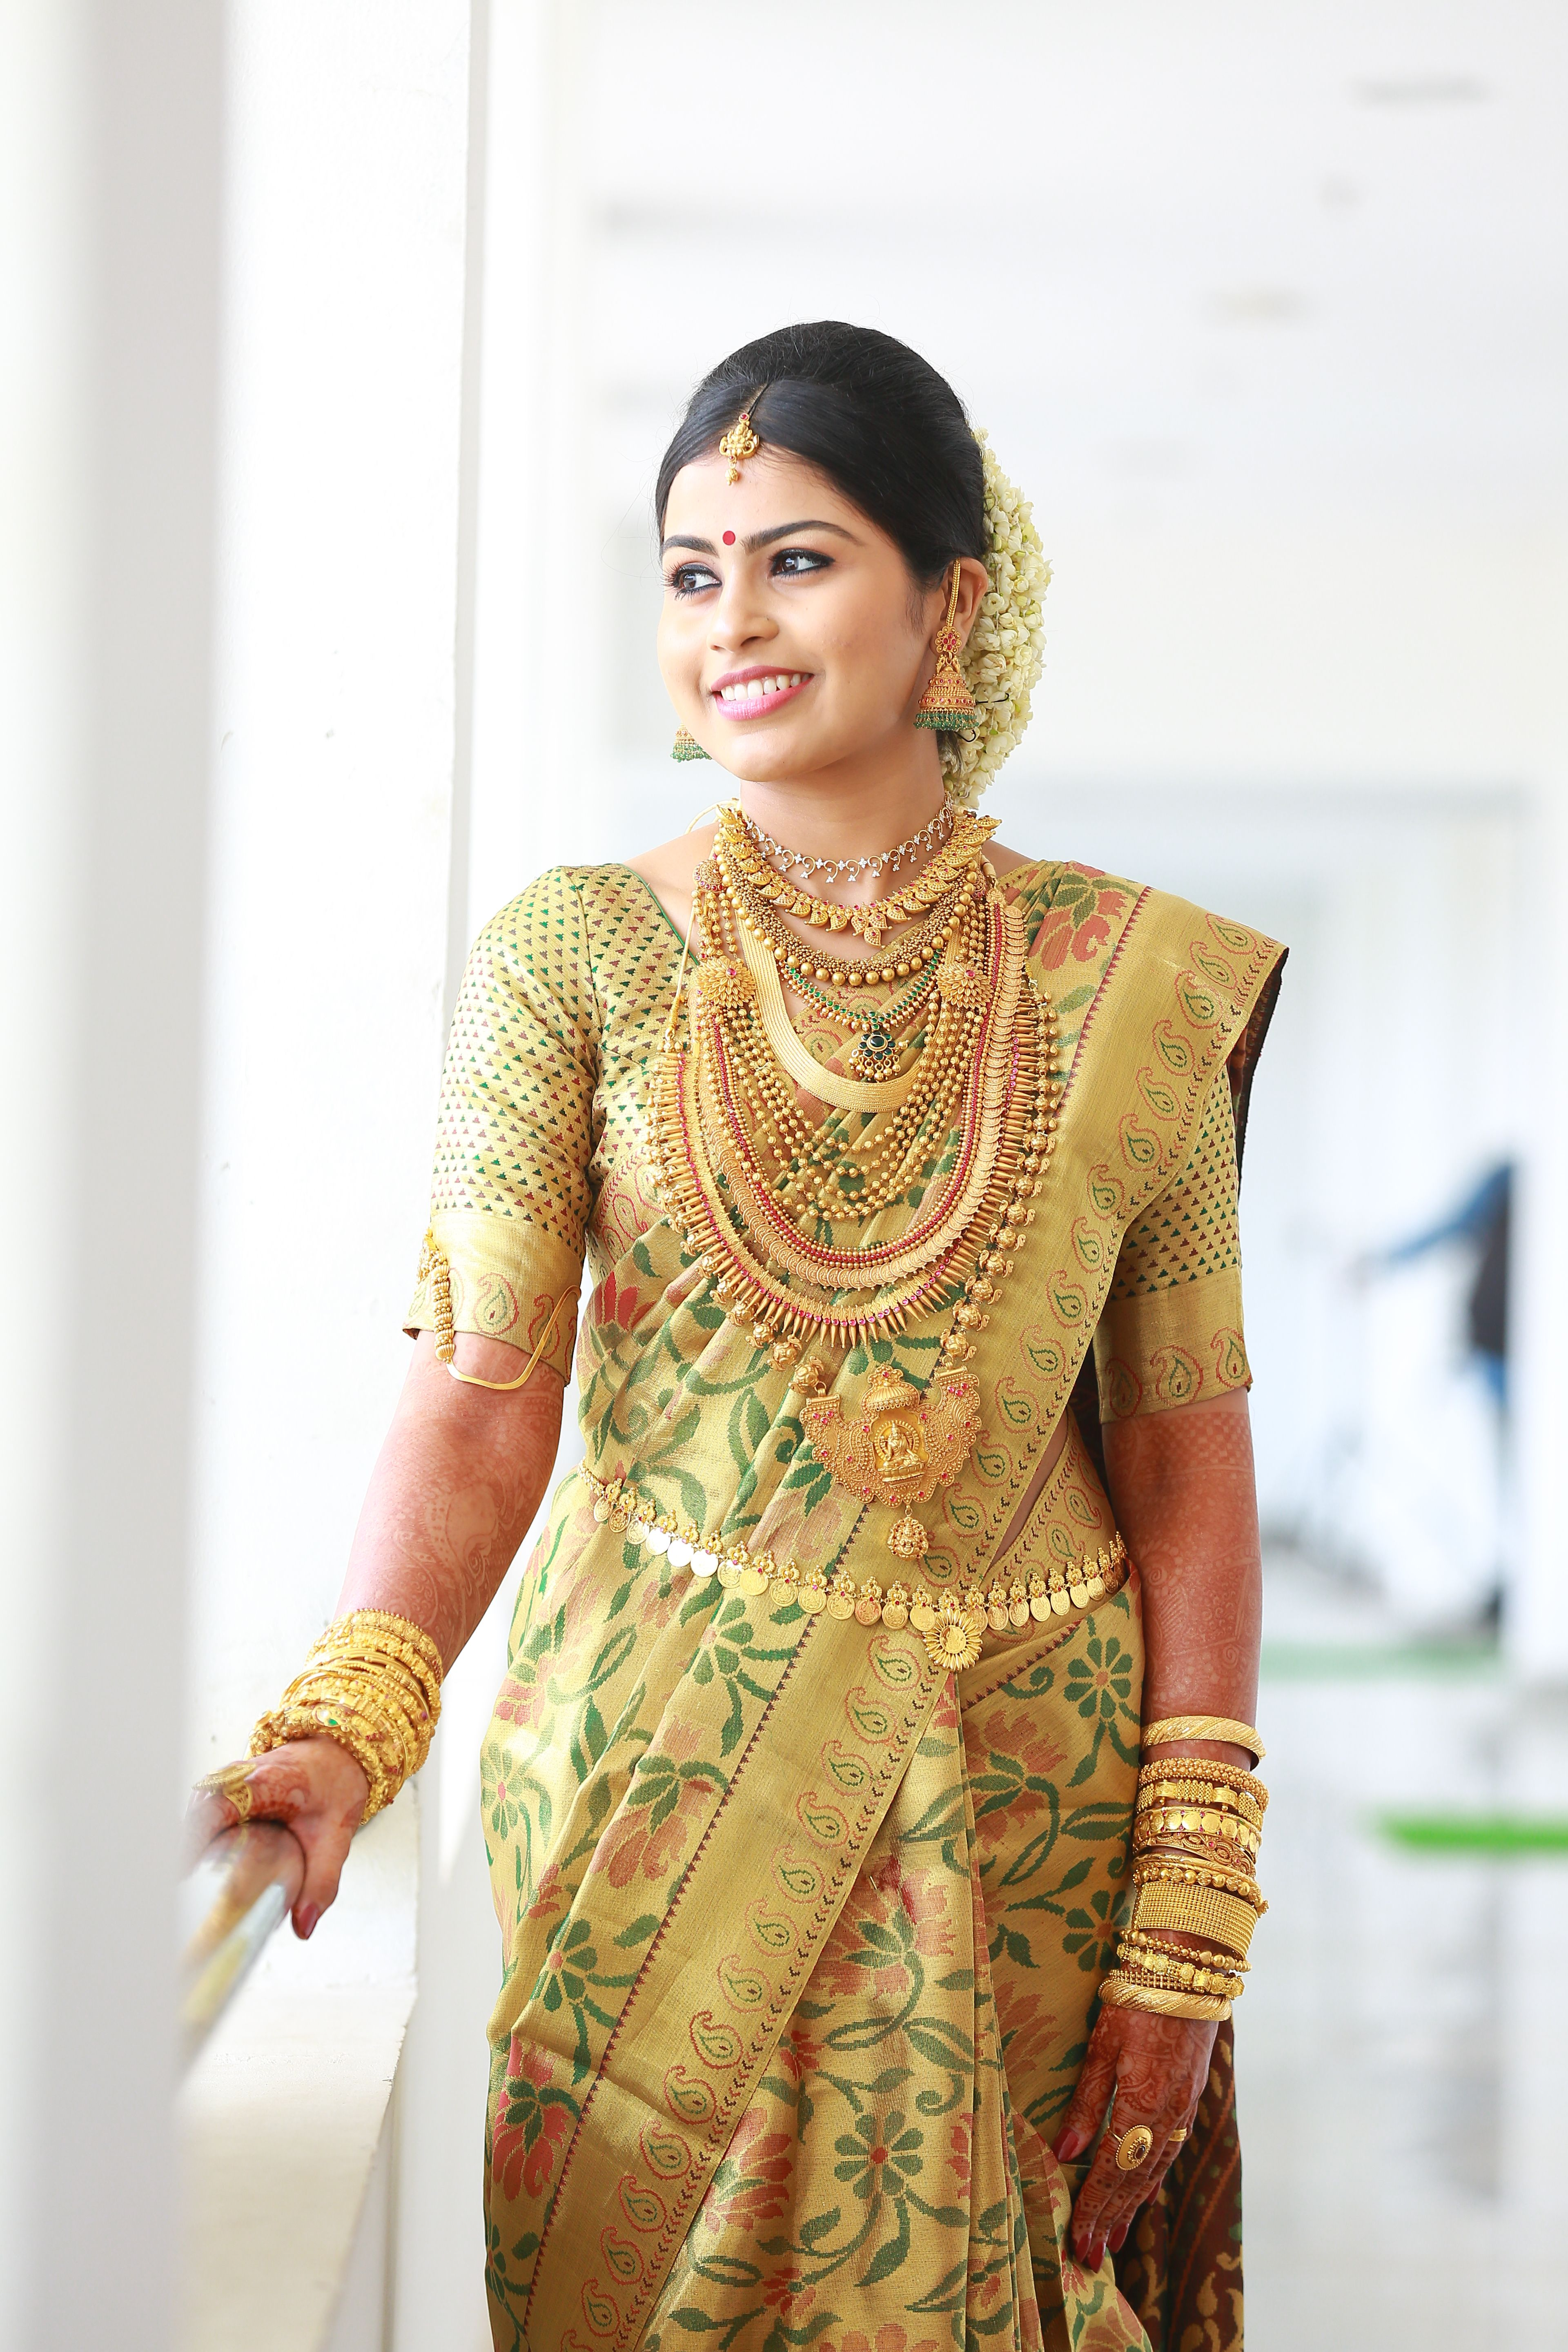 South Indian bride.Gold Indian bridal jewelry.Temple ...